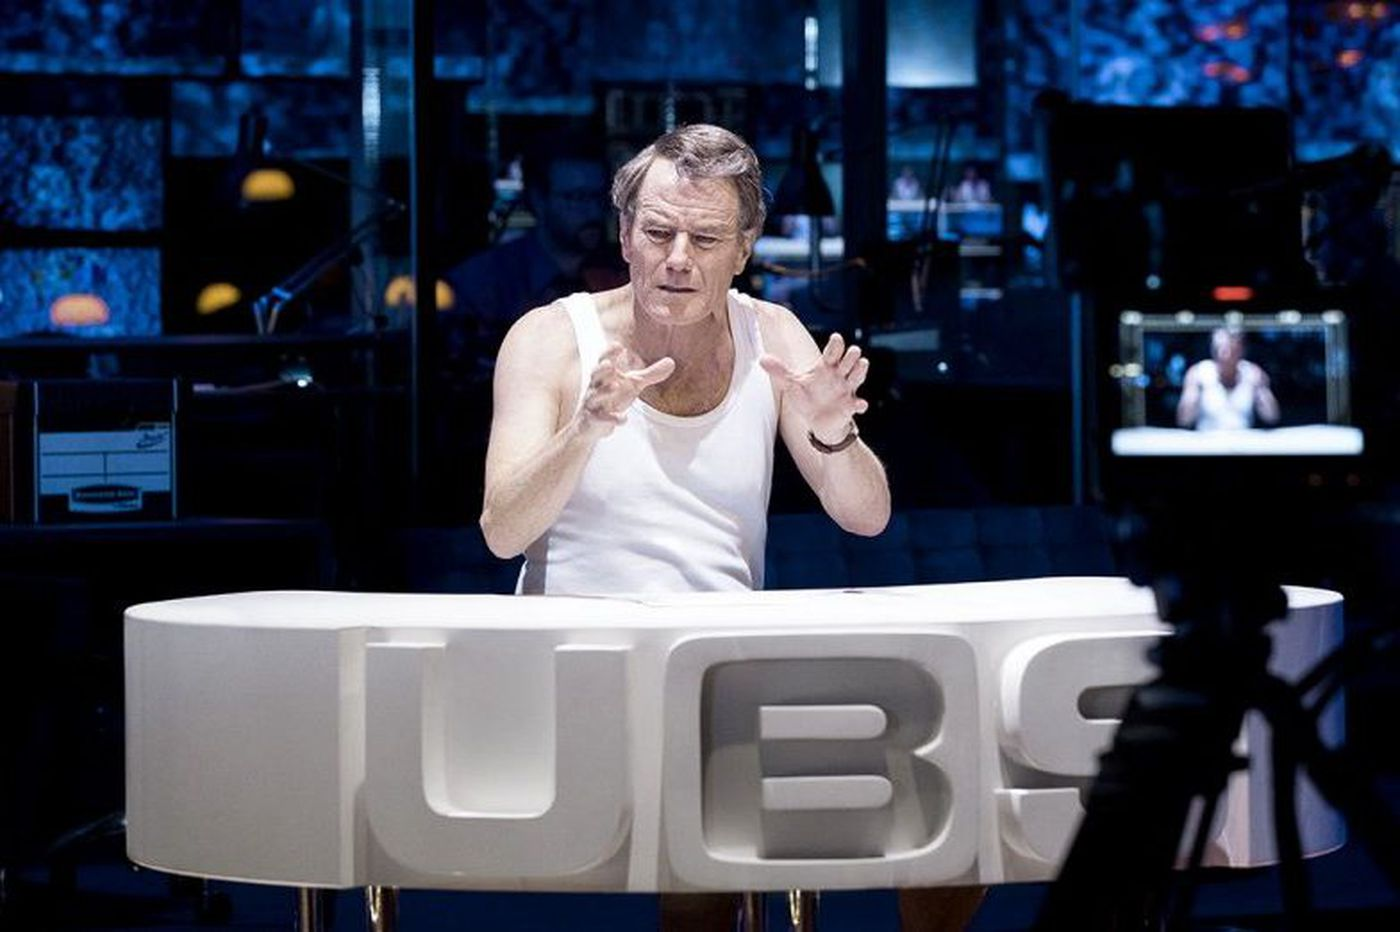 Broadway Beat: Walter White, Orphan Black, holiday shows, and more for Philly fans to know